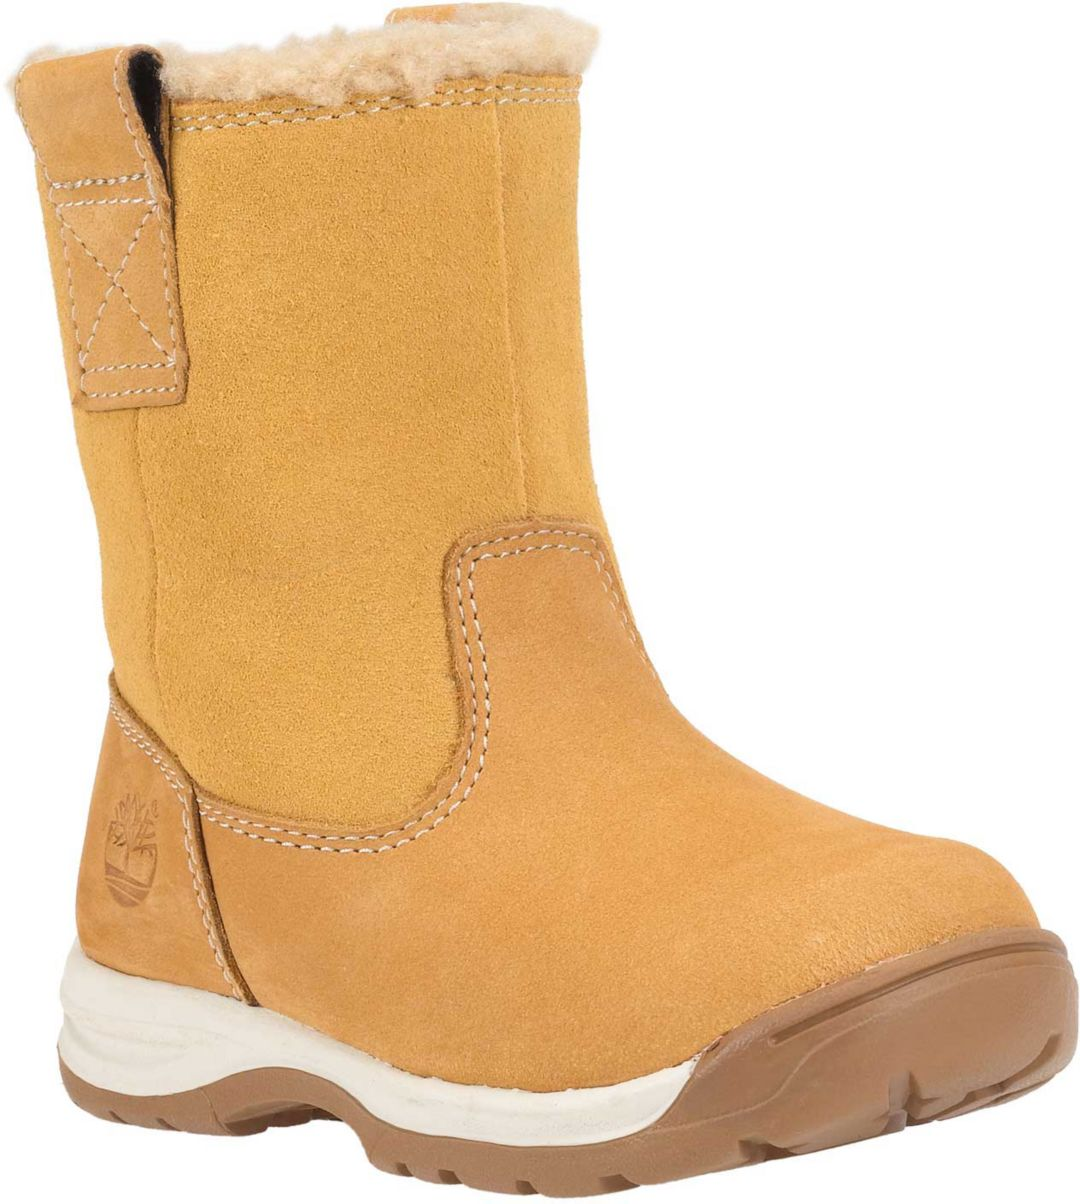 1a9055d04151f Timberland Kids' Earthkeepers Timber Tykes Pull-On 200g Winter Boots